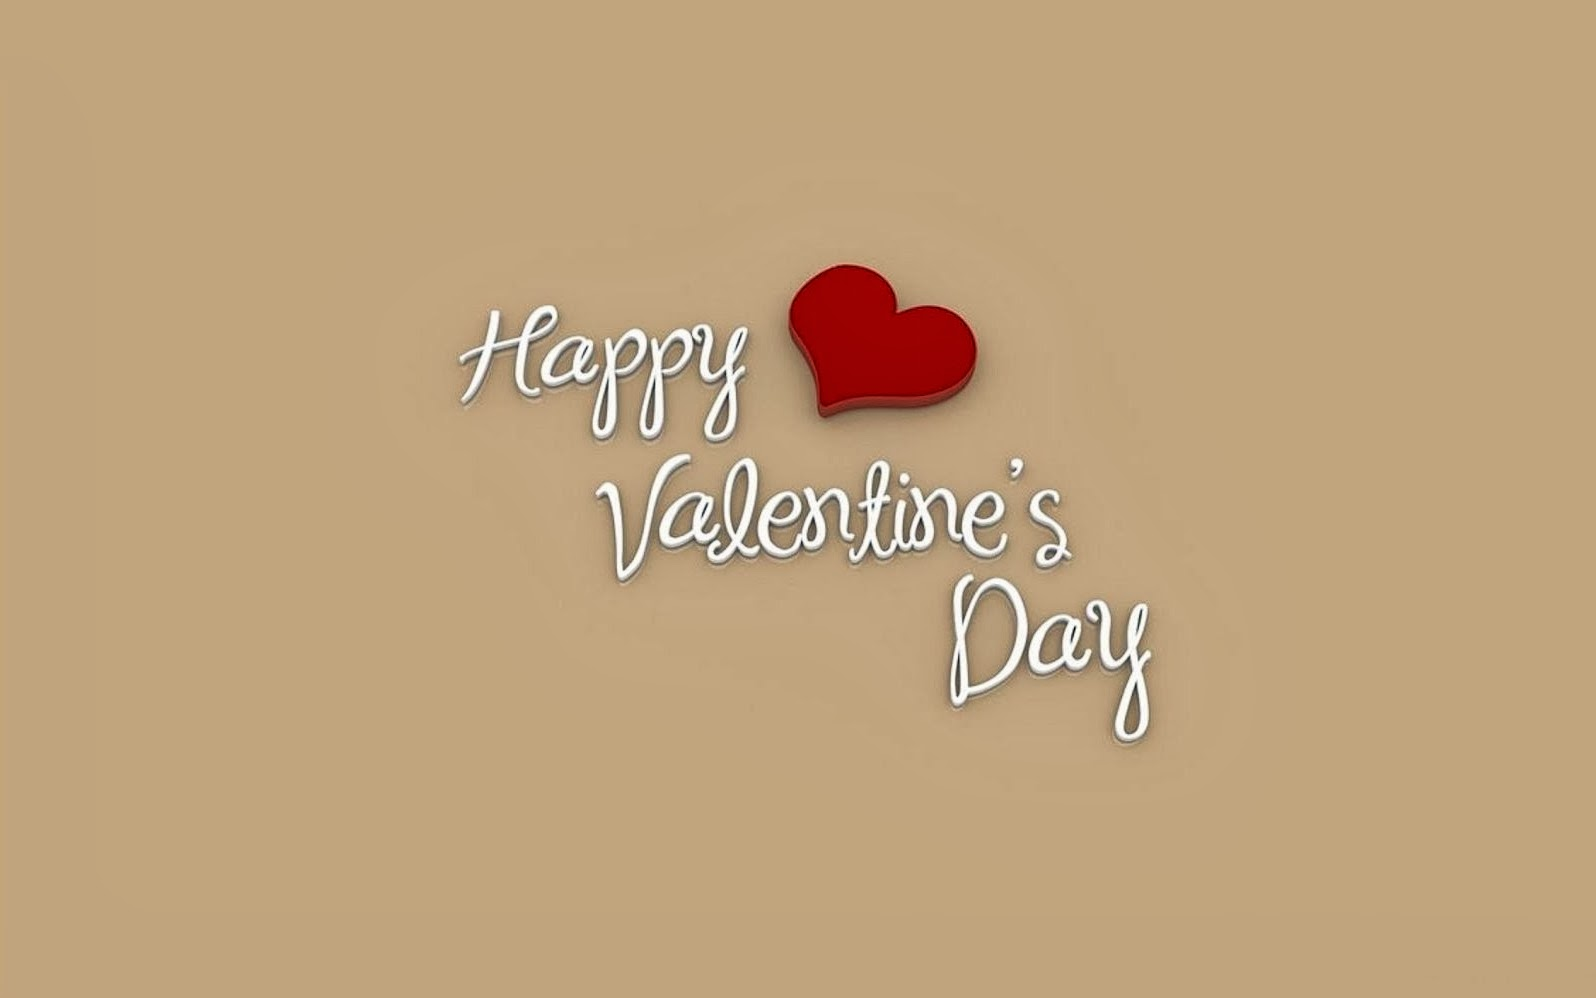 New-Valentines-Day-2014-Cards-for-friends-and-family-high-resolution.jpg